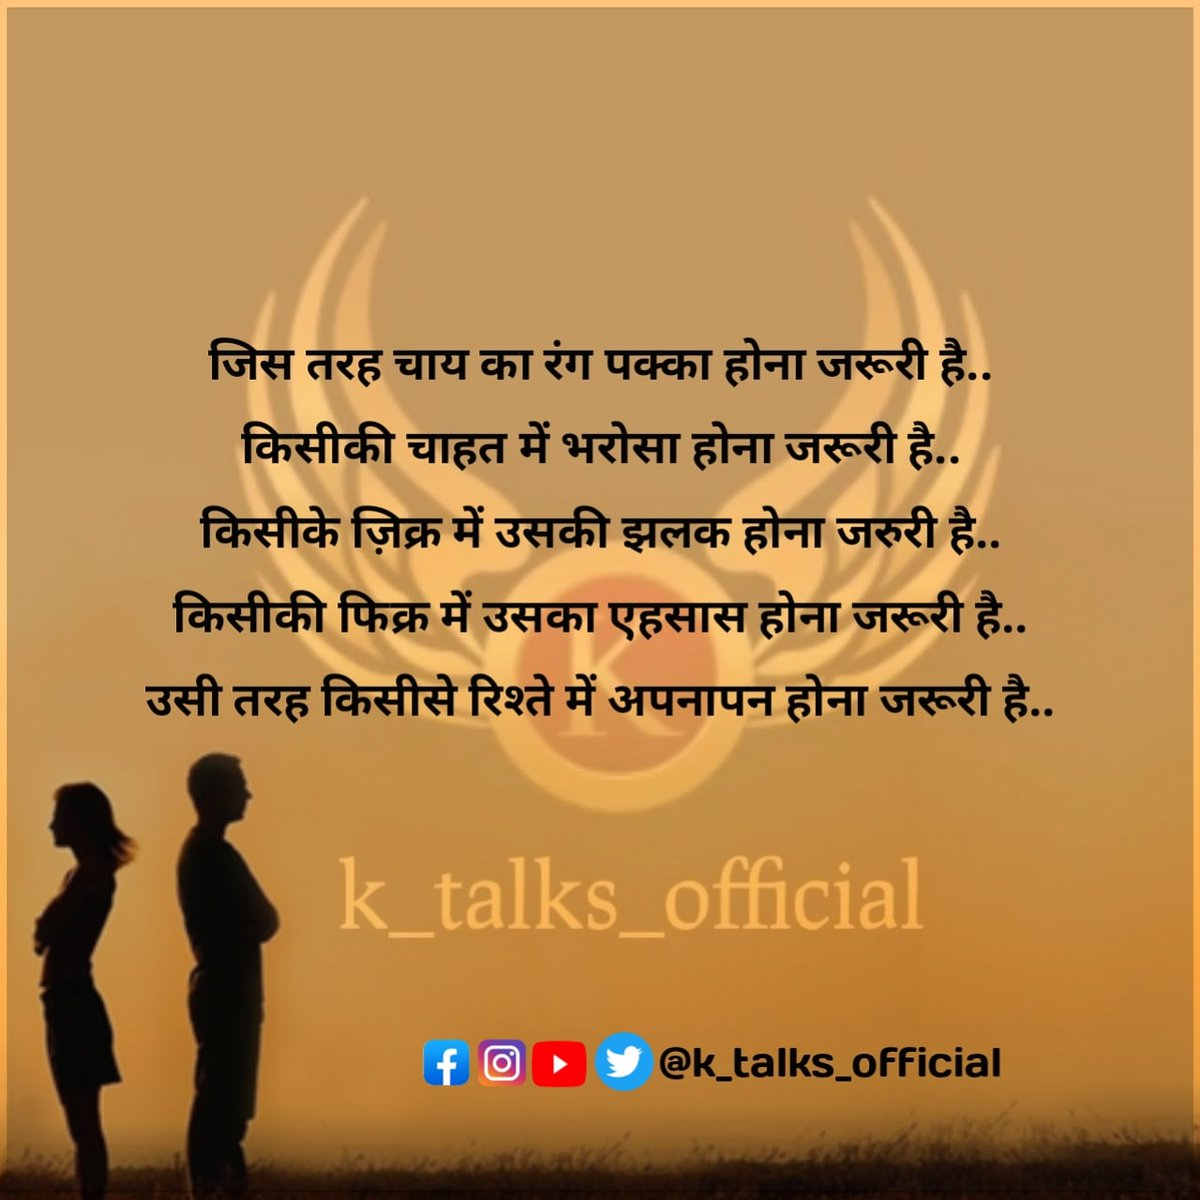 """रिश्ते में अपनापन होना जरूरी है""💙 @k_talks_official #k_talks_official #writer #loveislove #lovequotes #poetry #missing #confesses #confessing  #moviequotes #keytosuccess  #nanotales #wordgasm #instagram #motivationalsayings  #spilledthoughts #facebook  #mythoughts #sundayvibes"